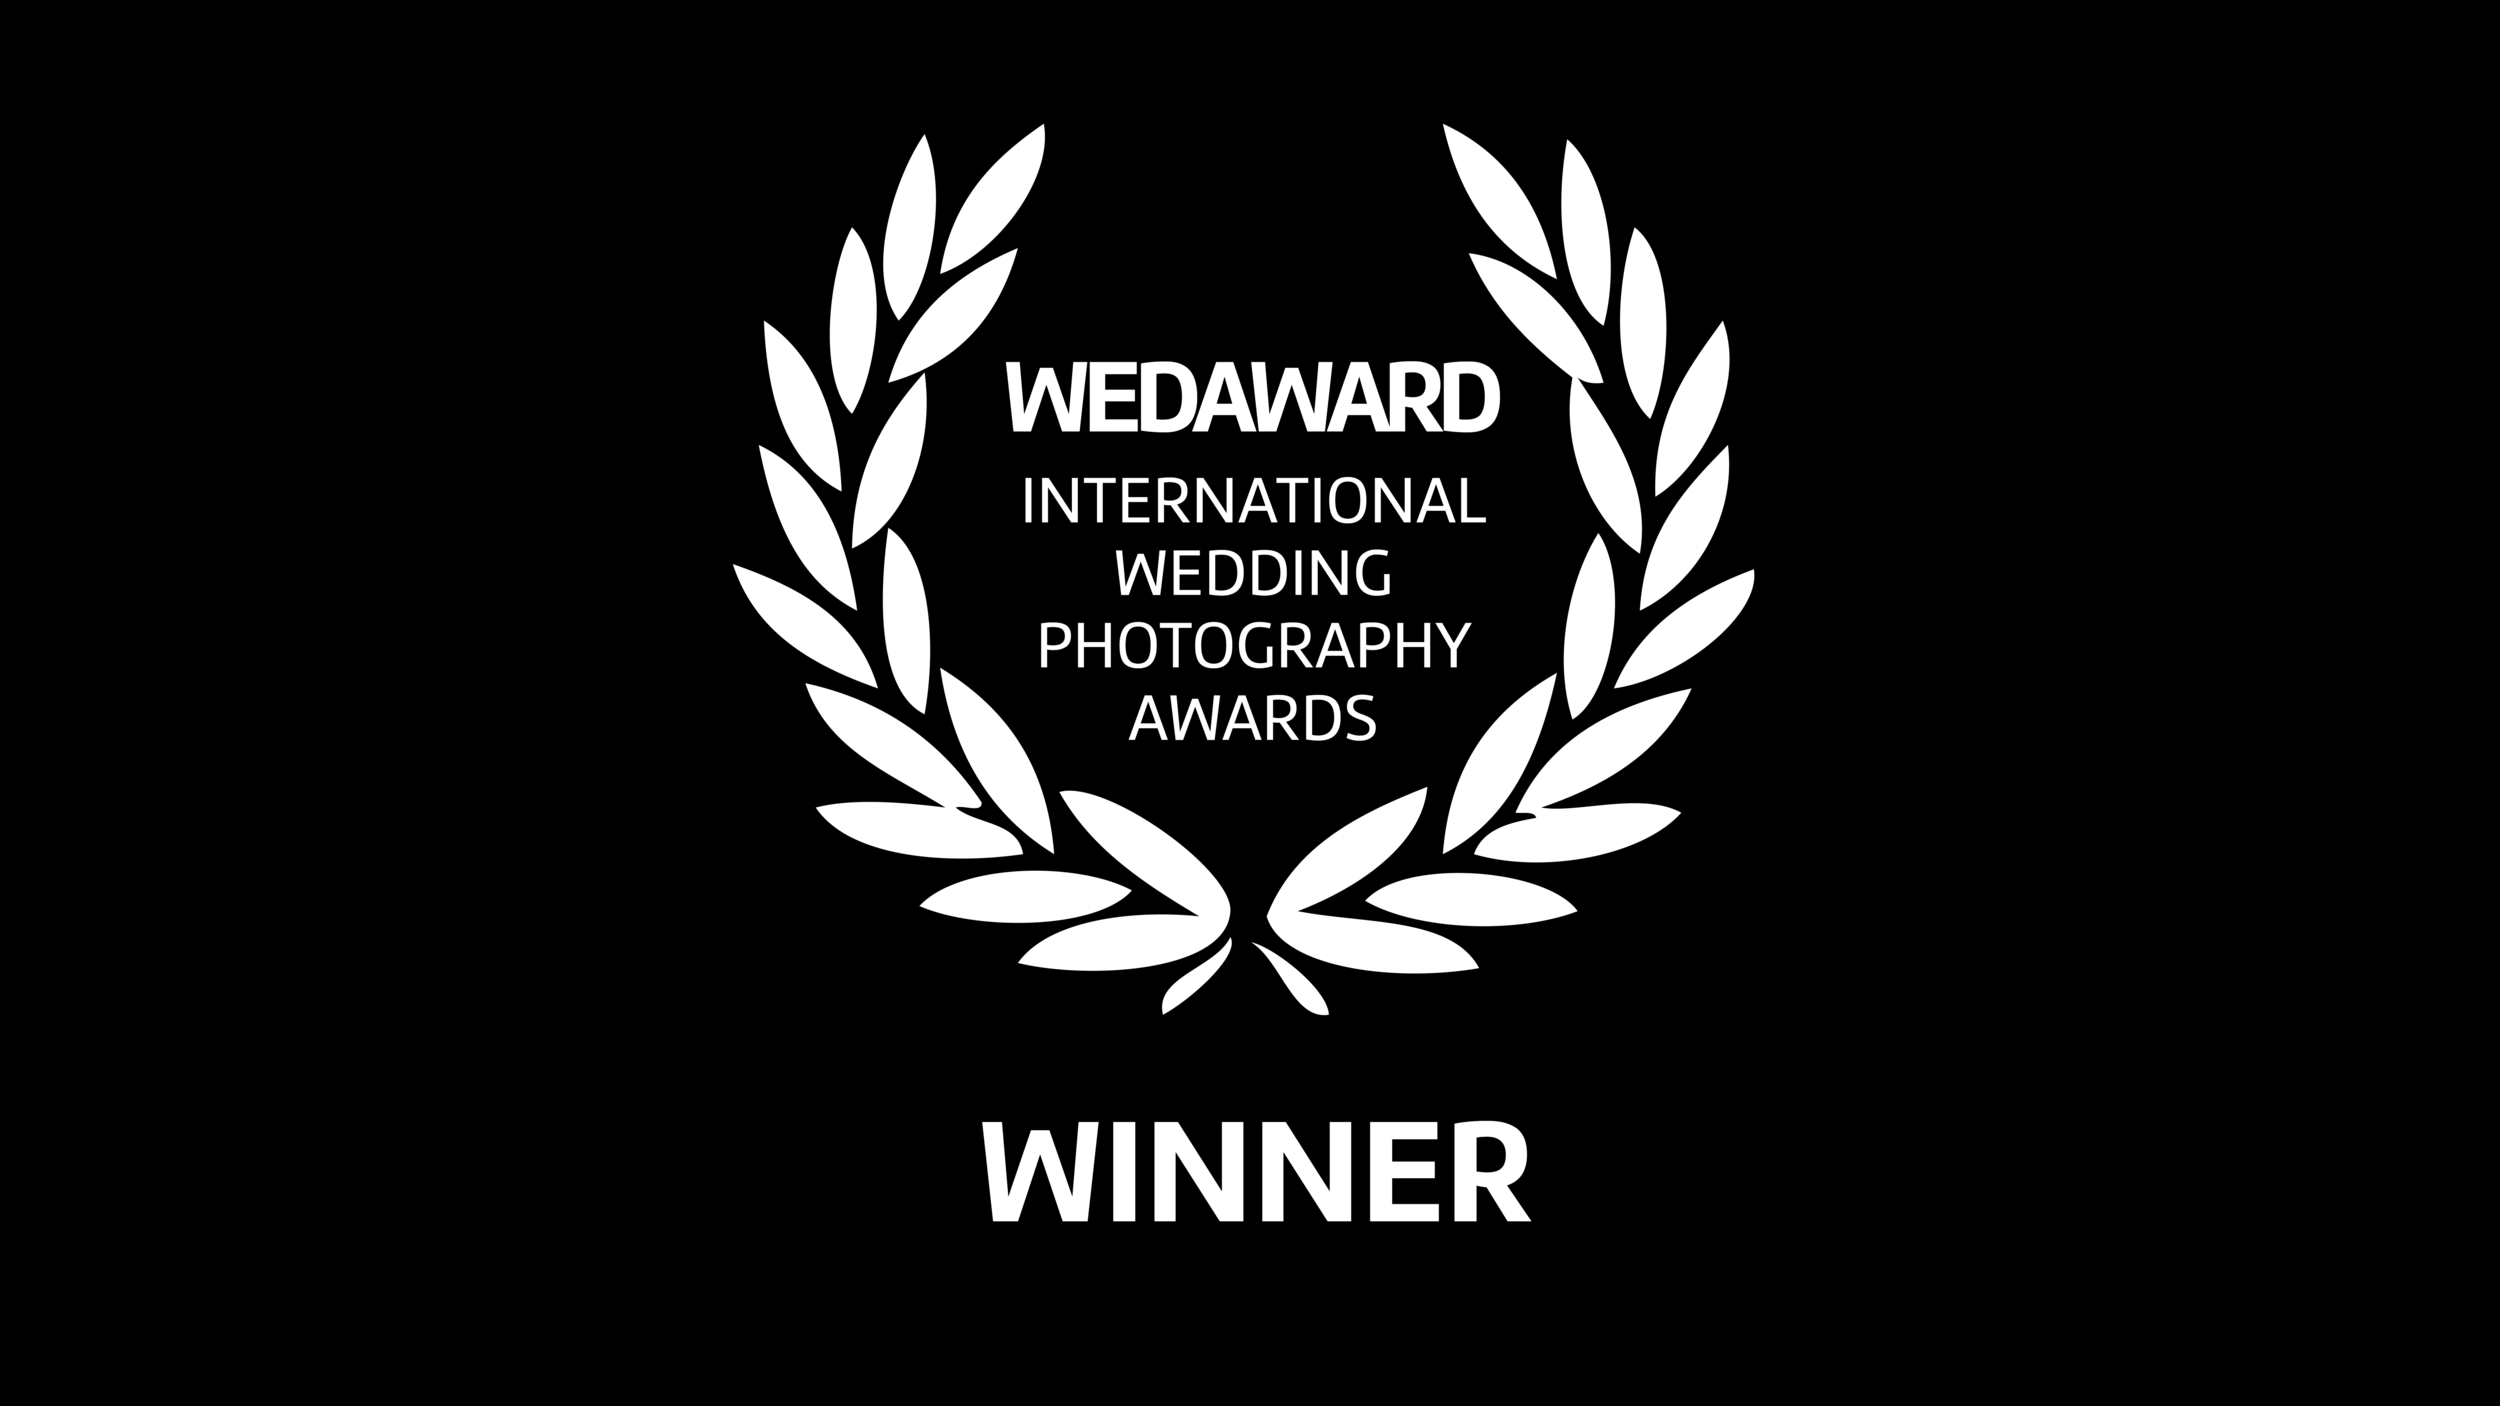 wedaward  international wedding photography awards - winner